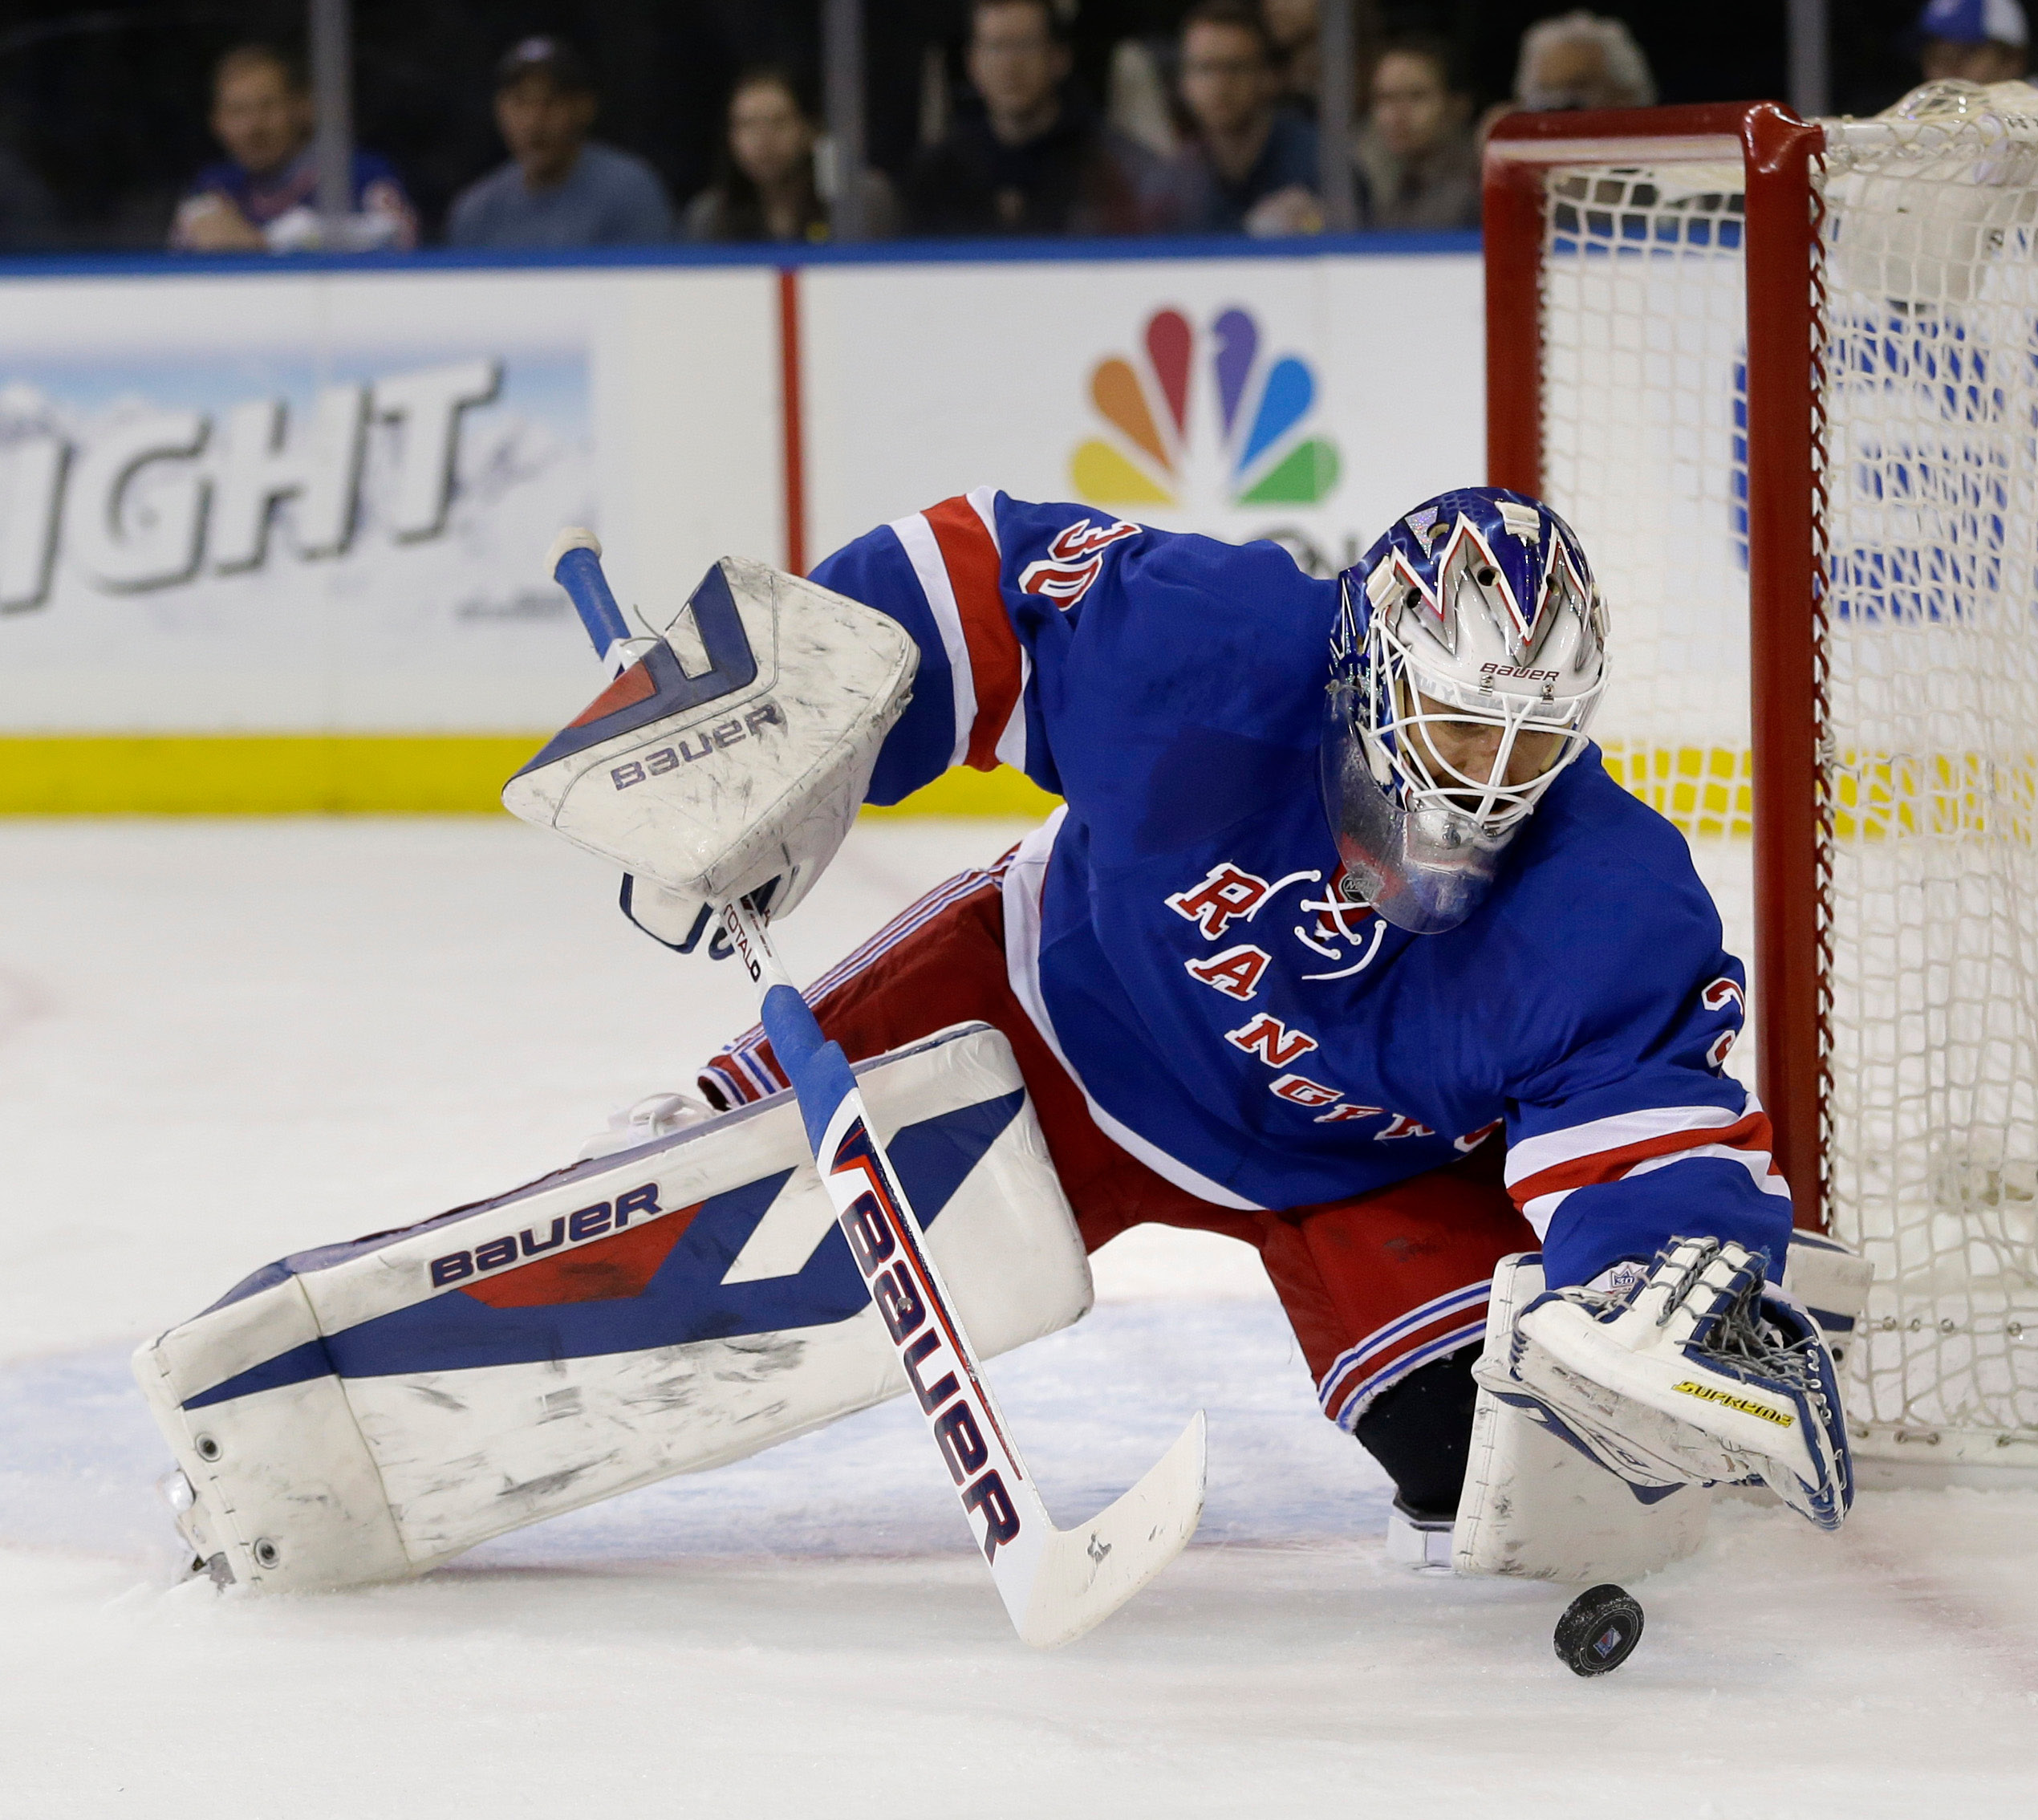 Rangers' goalie Henrik Lundqvist makes a save during the first period of Sunday's NHL playoff game against Philadelphia in New York.  | Associated Press